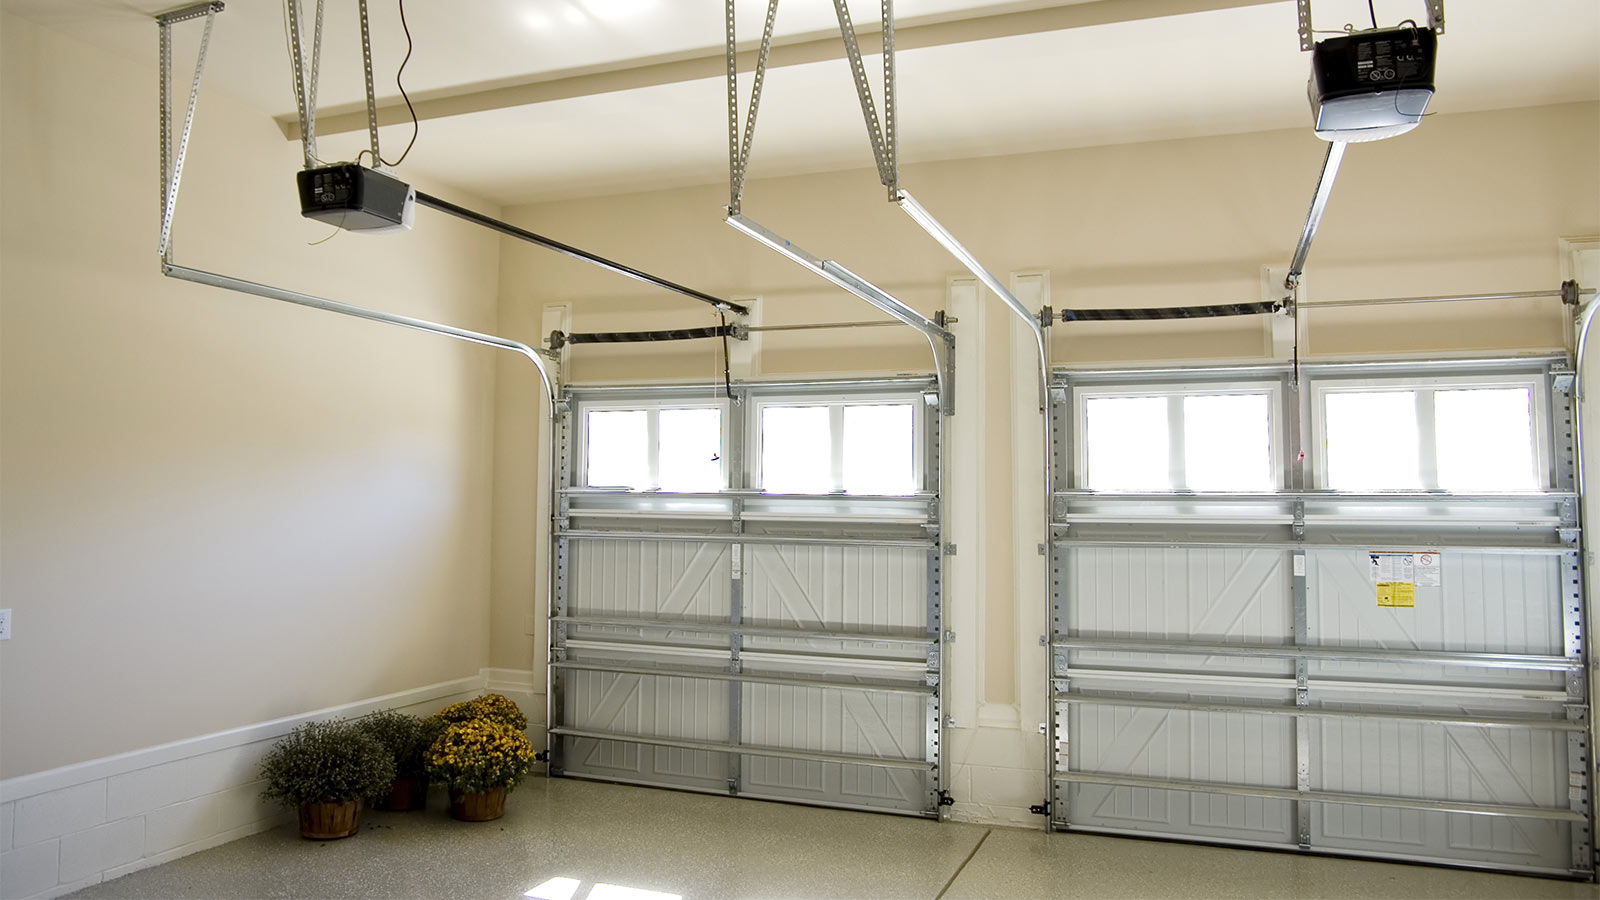 Sectional Garage Doors from Window Roller Shutters Maidstone suppliers.